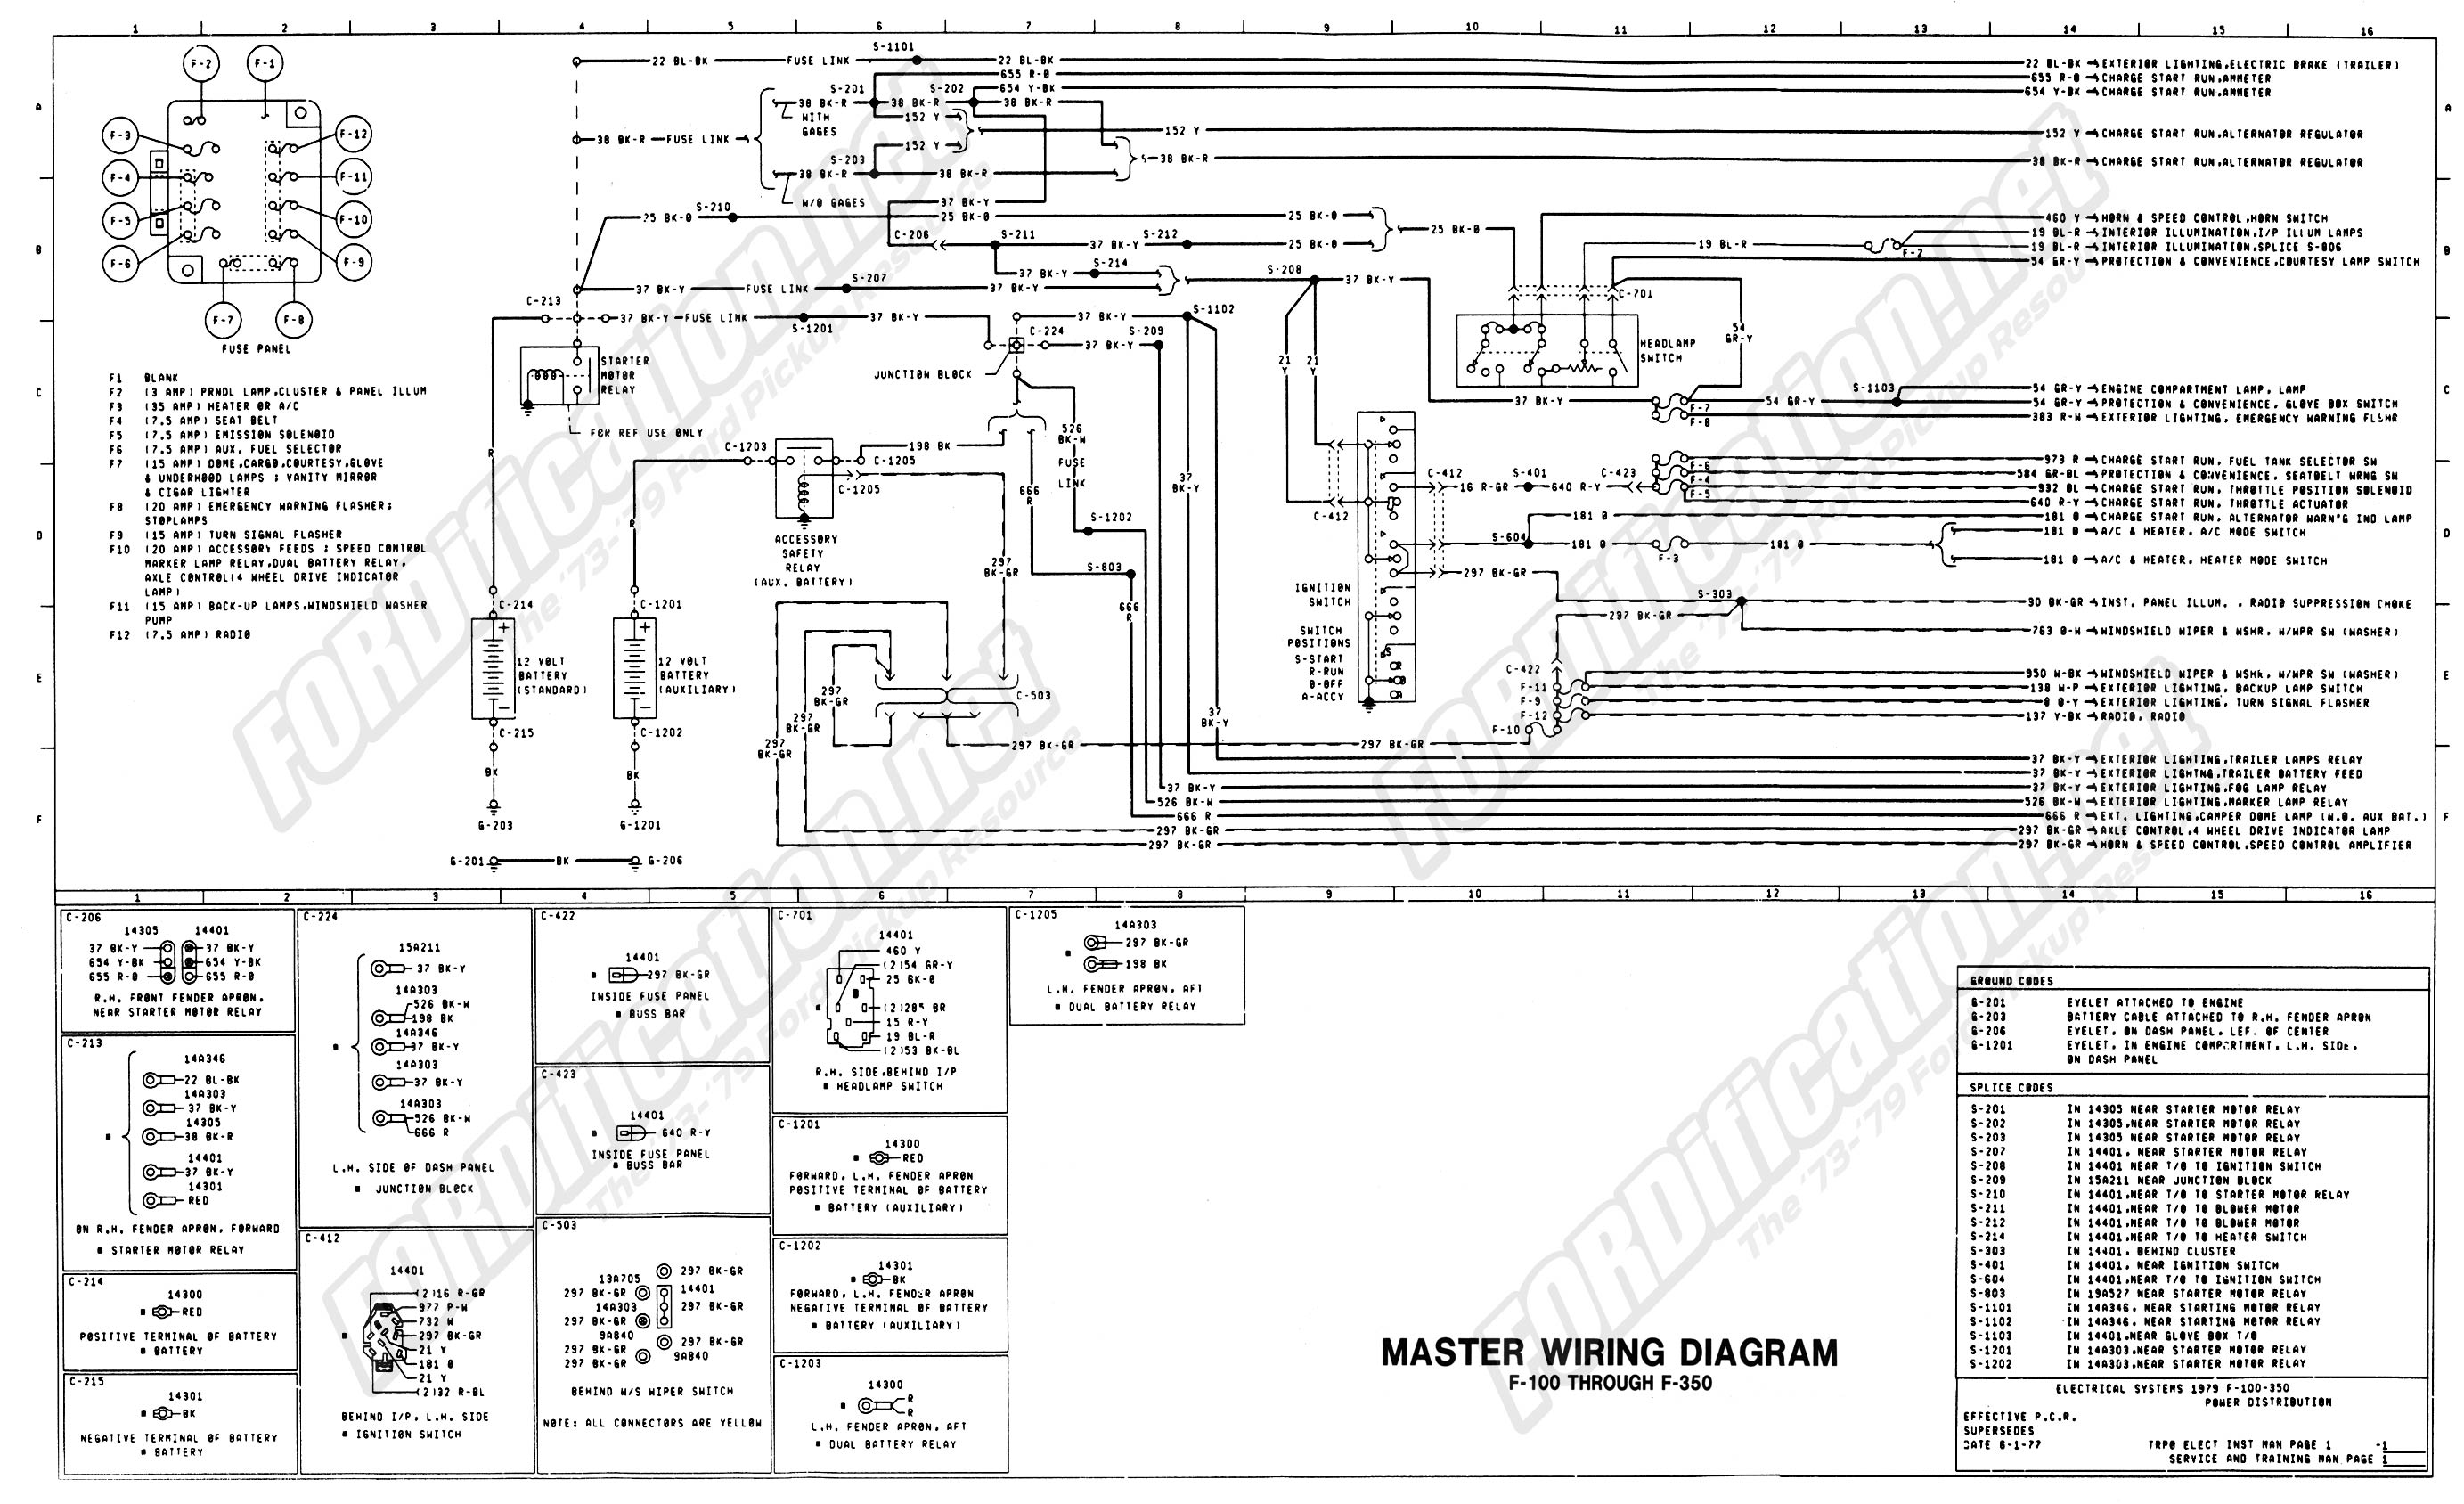 wiring_79master_1of9 1973 1979 ford truck wiring diagrams & schematics fordification net 1979 ford f100 fuse box diagram at creativeand.co